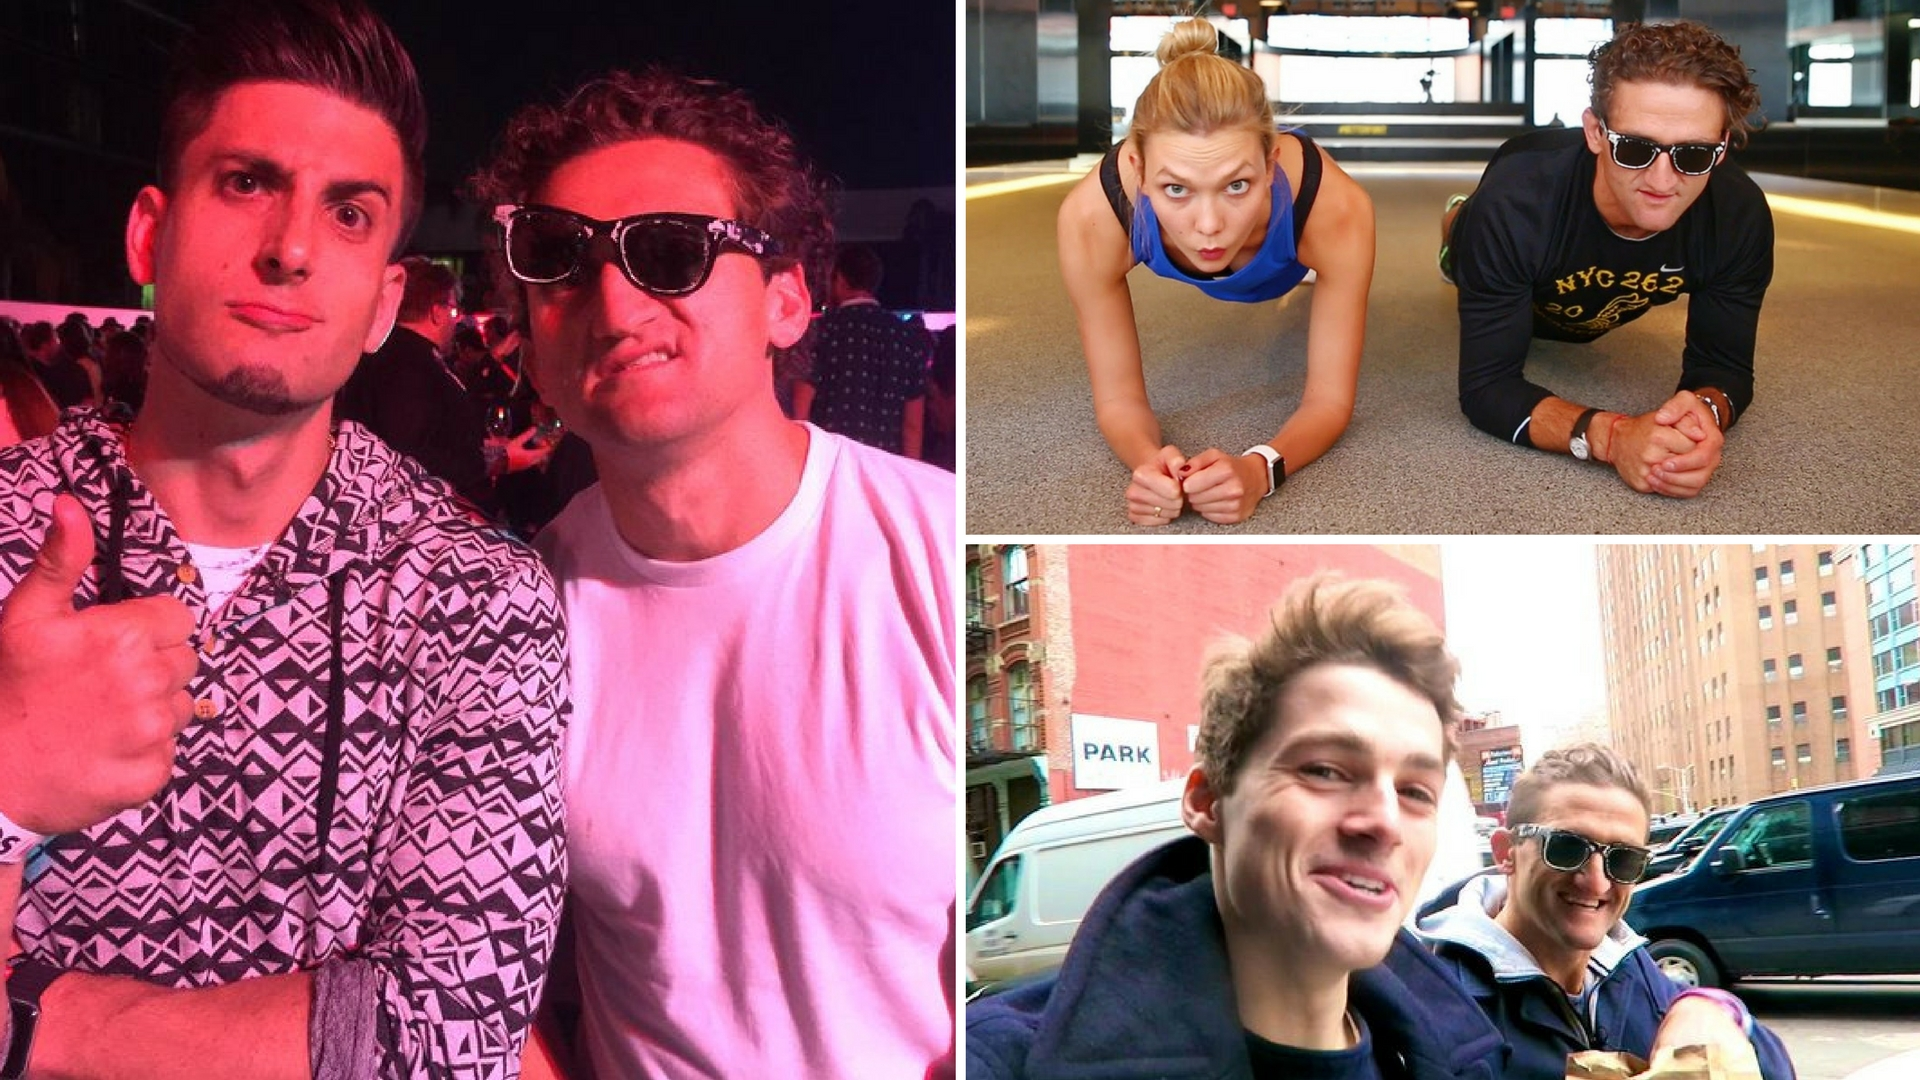 casey neistat and his friends jack jesse and karlie